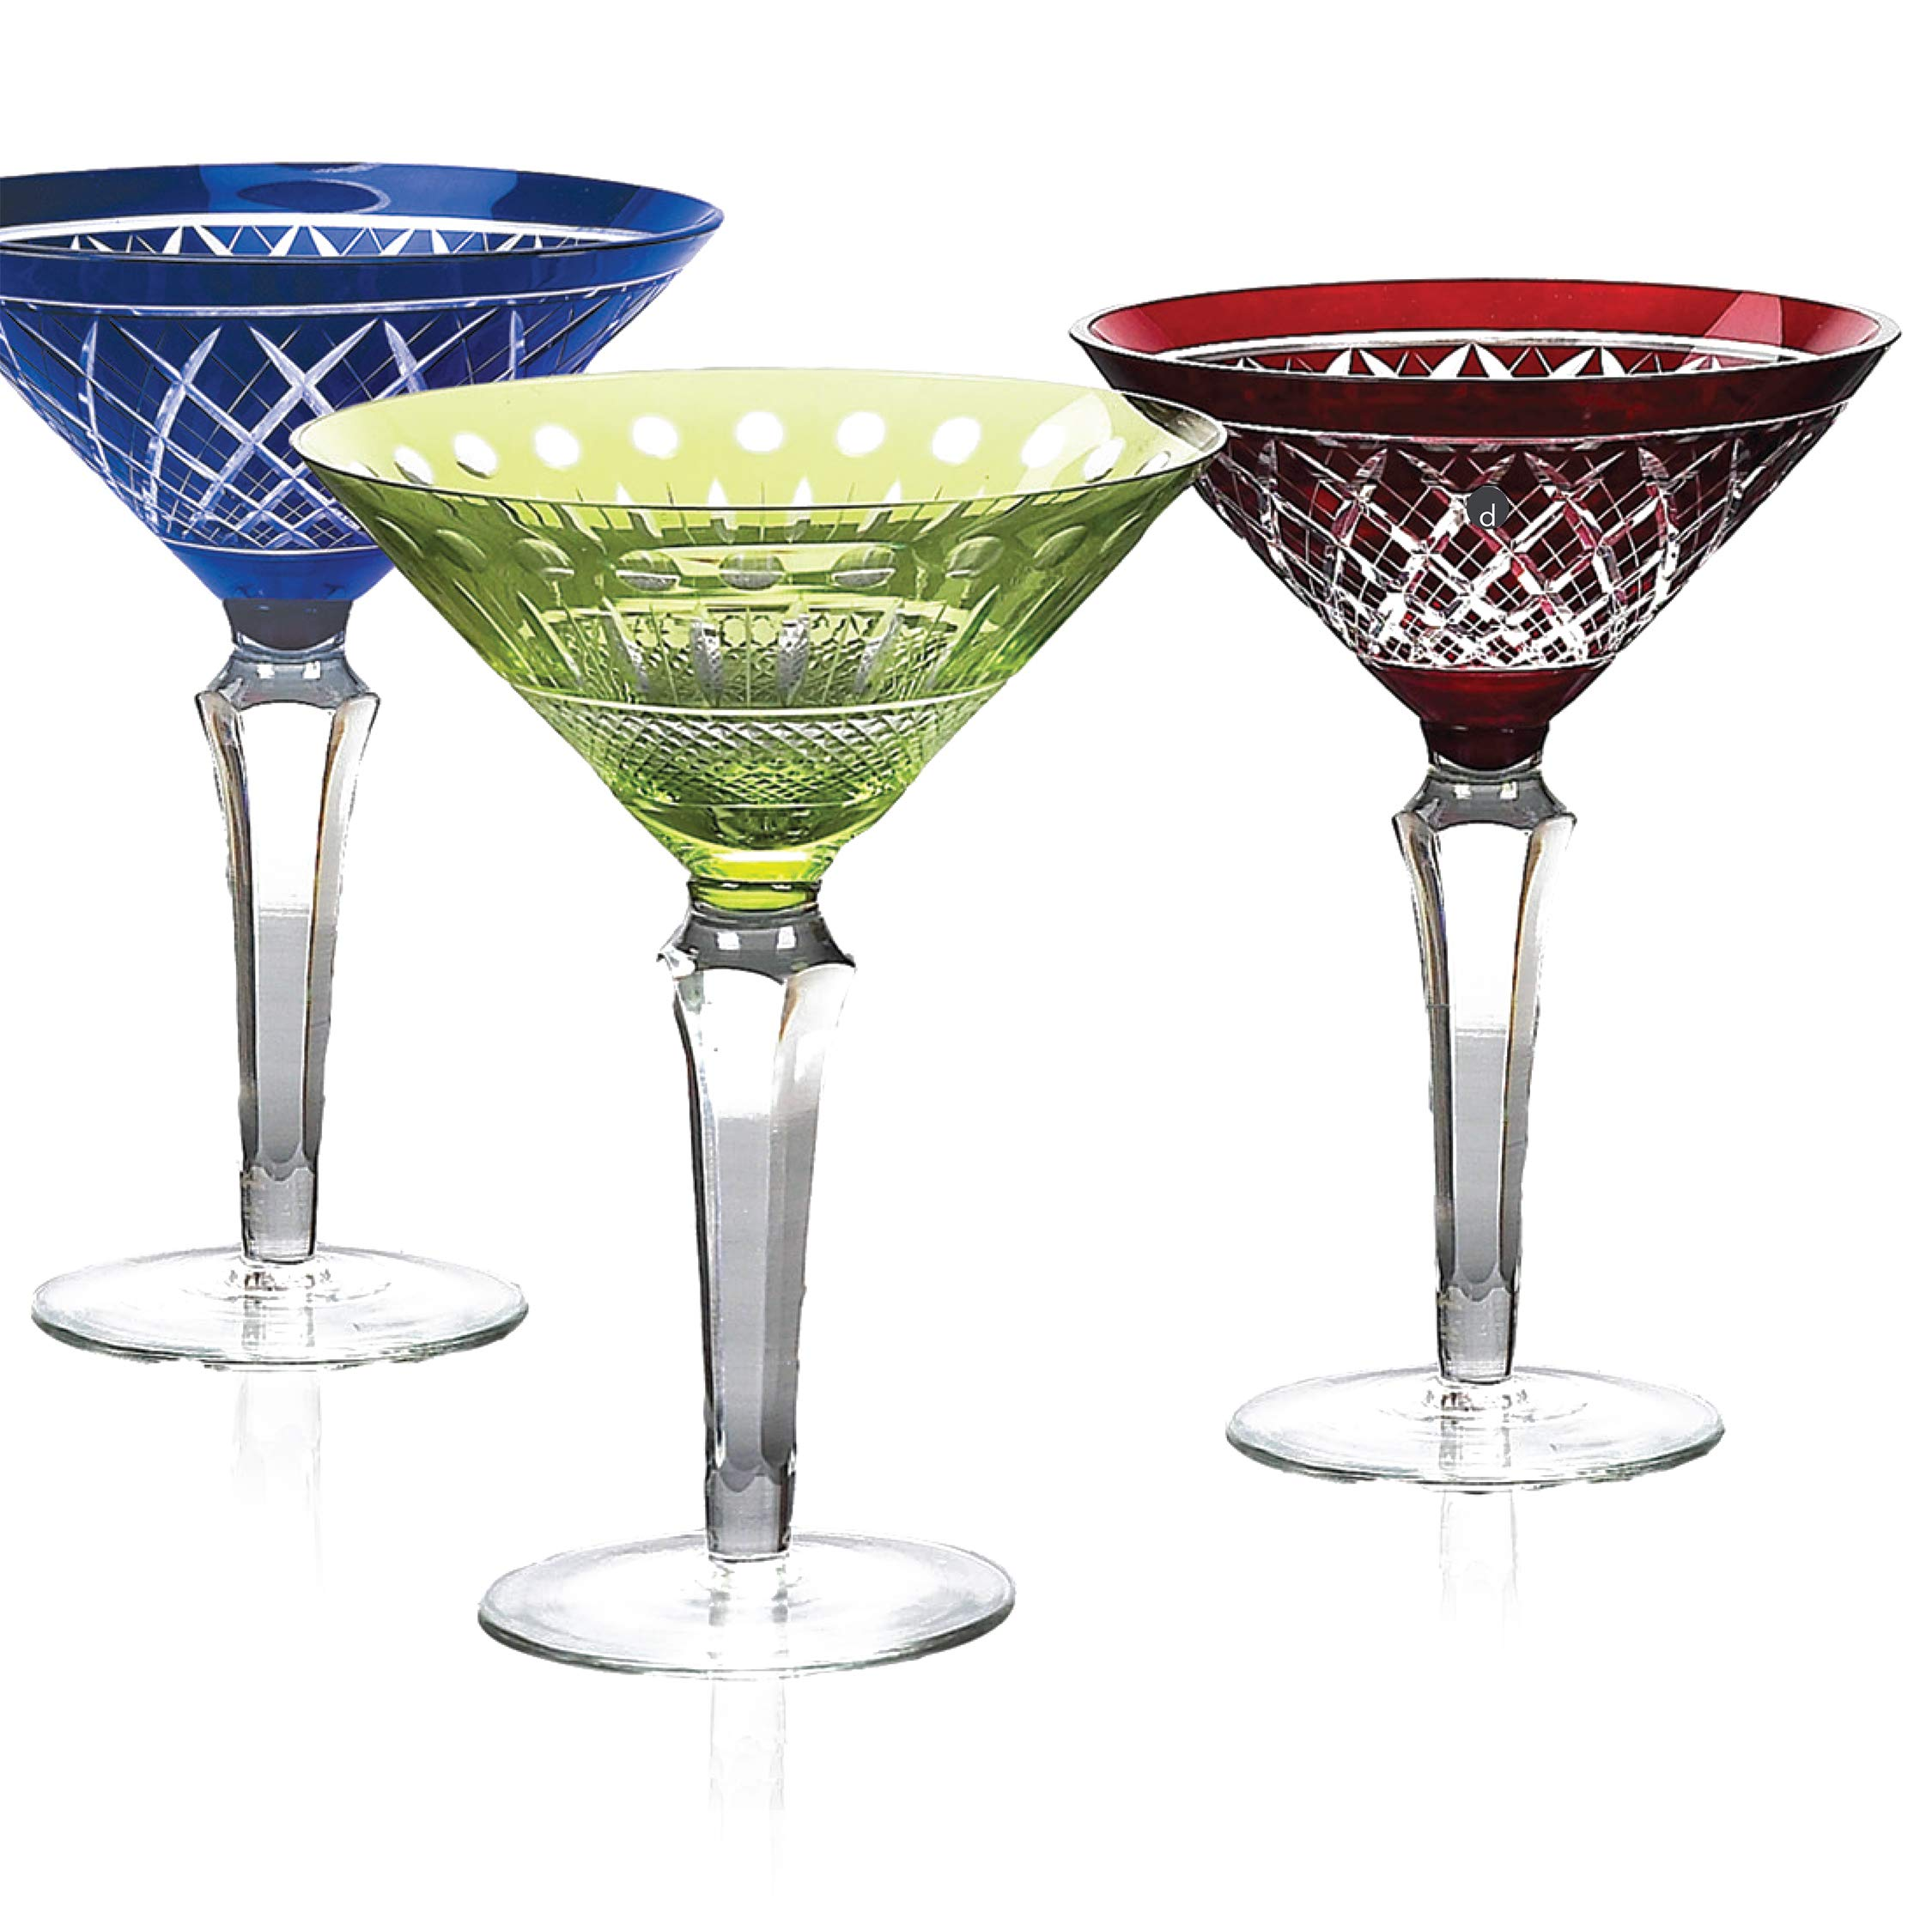 IMPULSE! Glam Martini Cobalt Blue Martini Glasses, Set of 6 by IMPULSE!